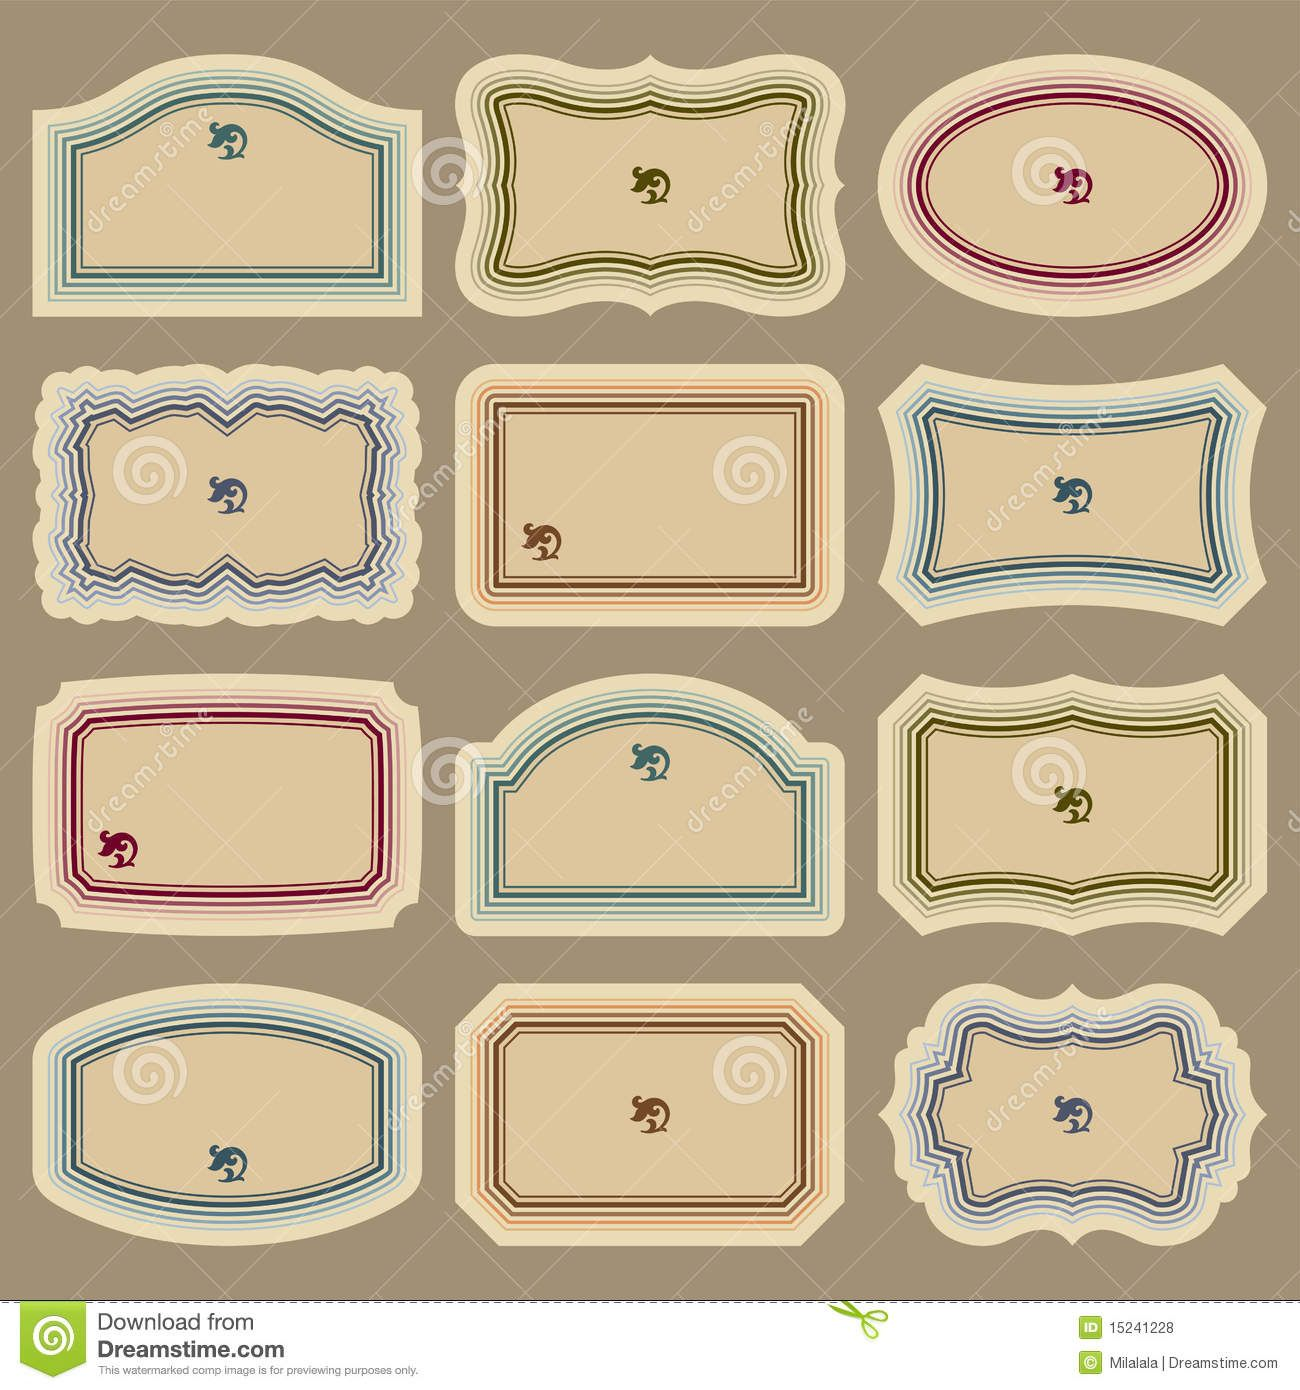 images free printable blank labels vintage label templates | sewing